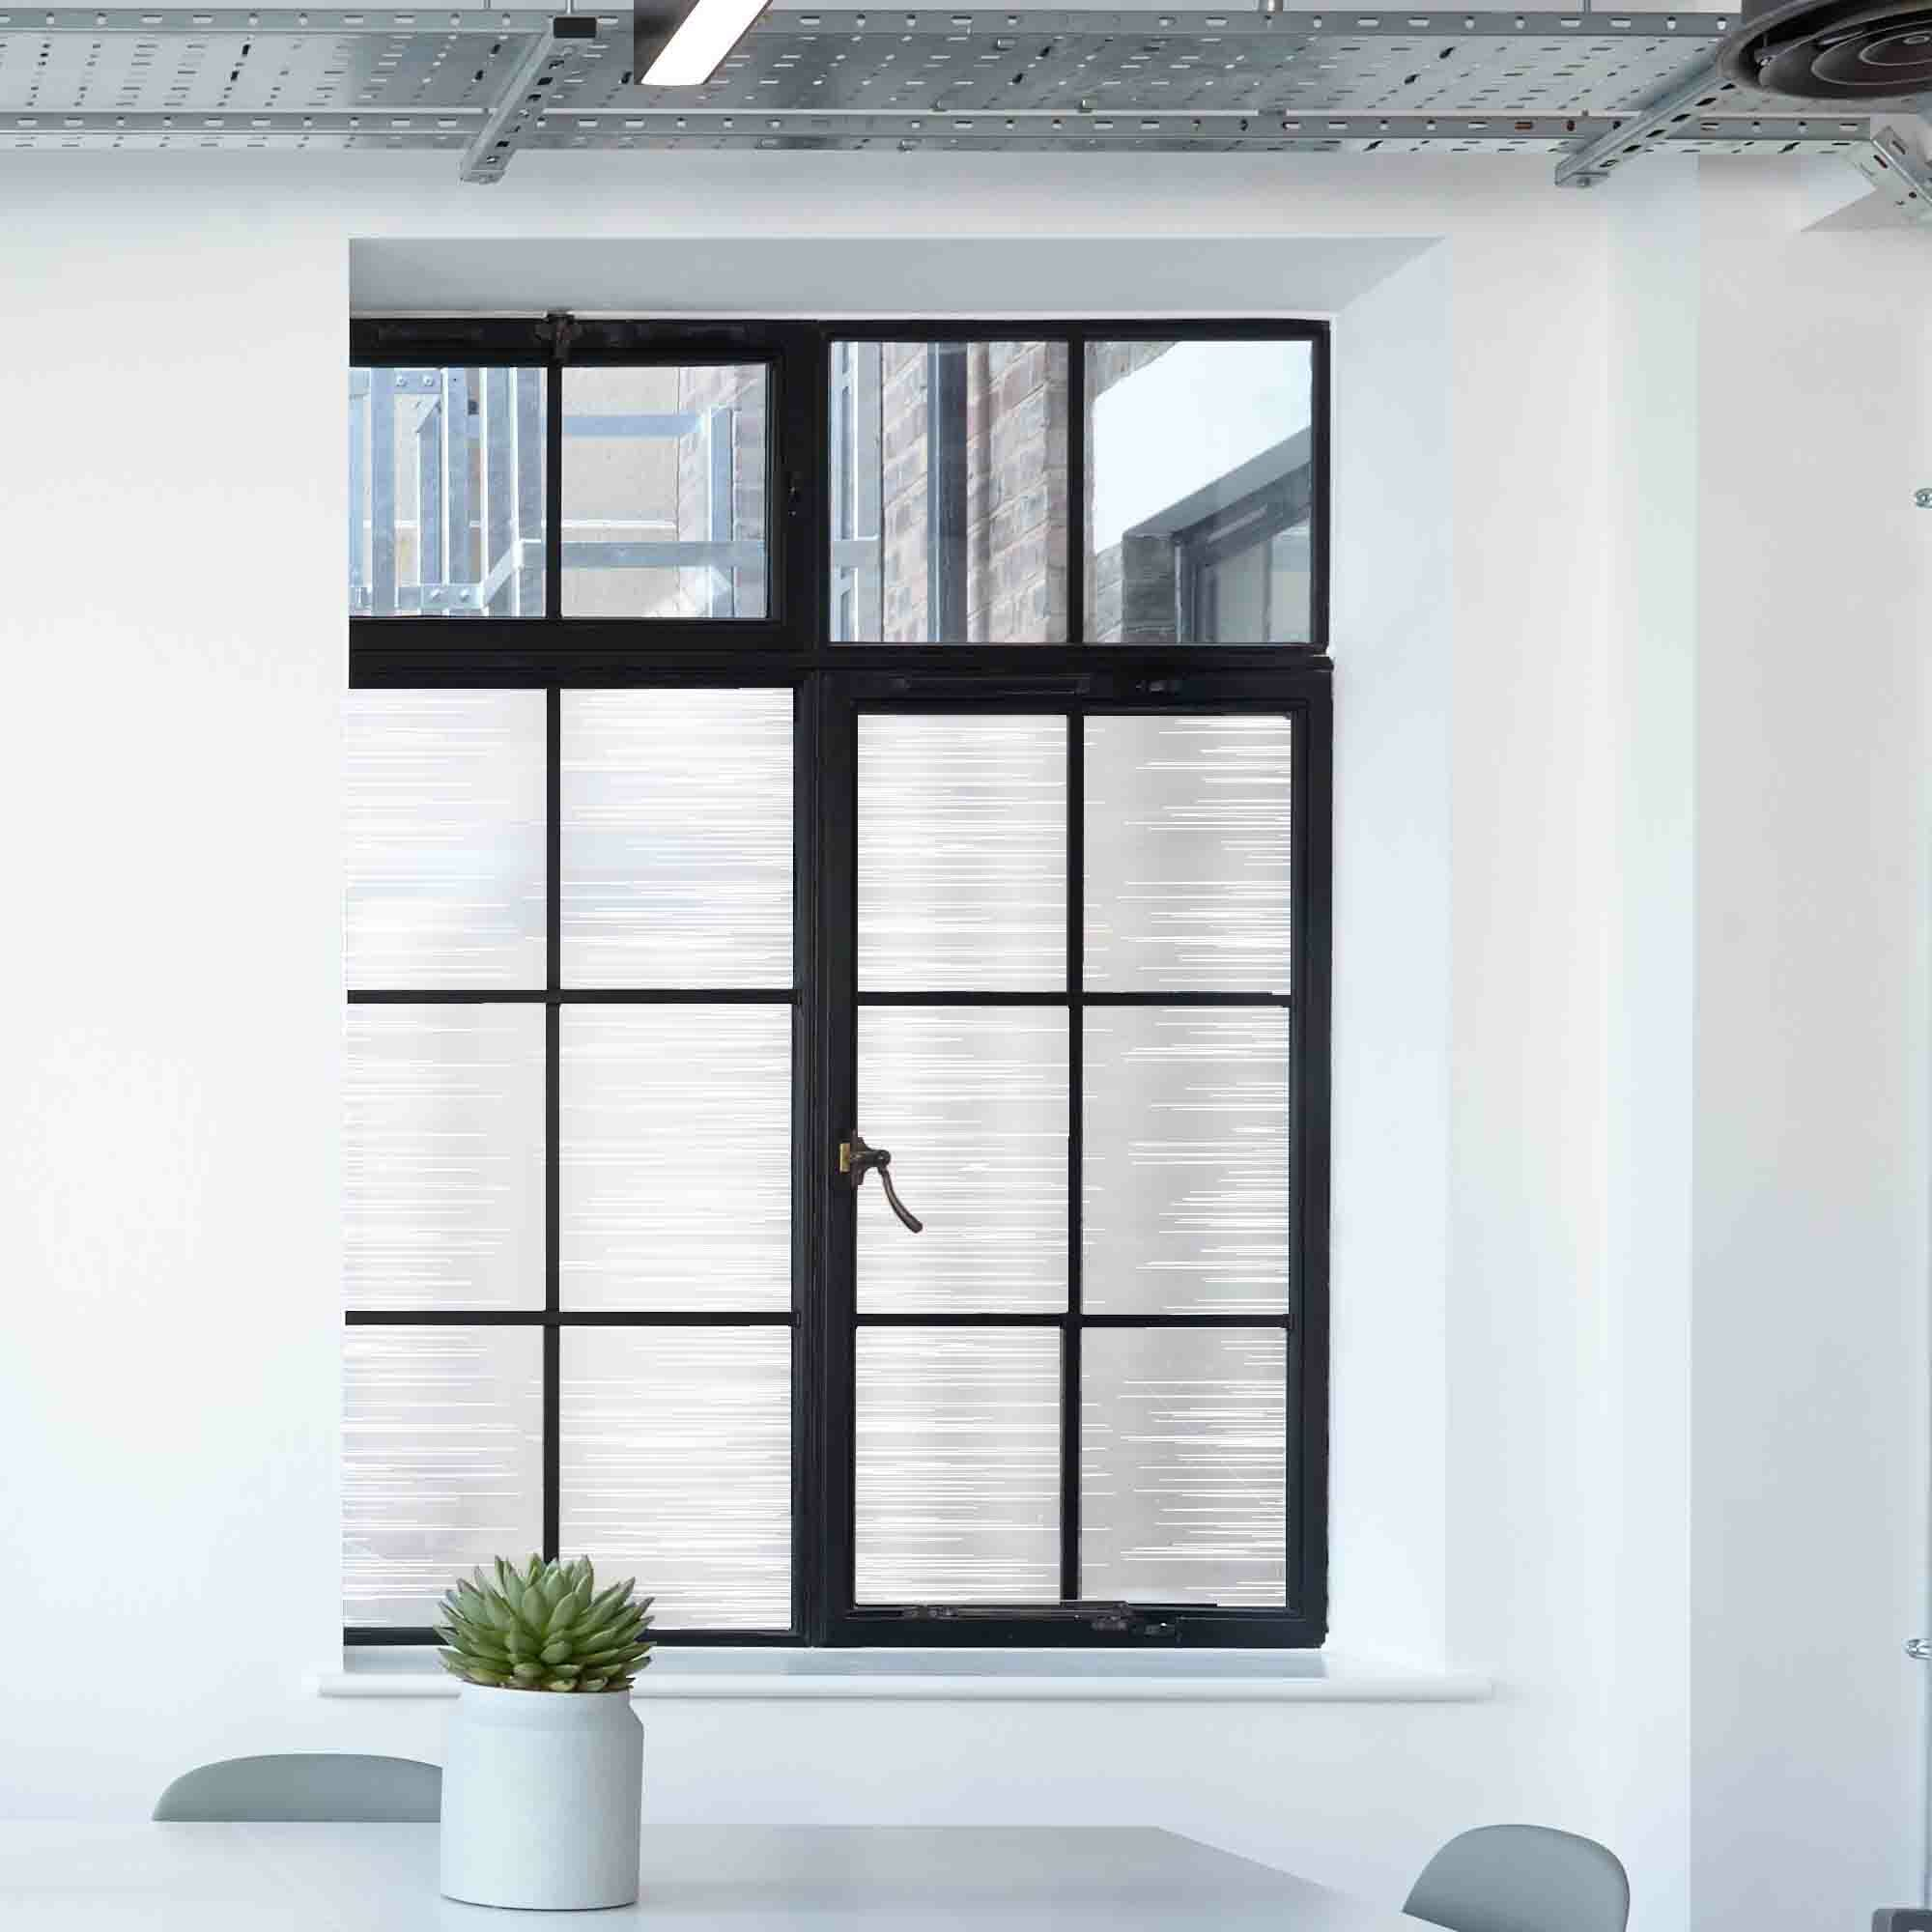 Privacy window film in a contemporary abstract linear pattern shown on multi-paned glass.